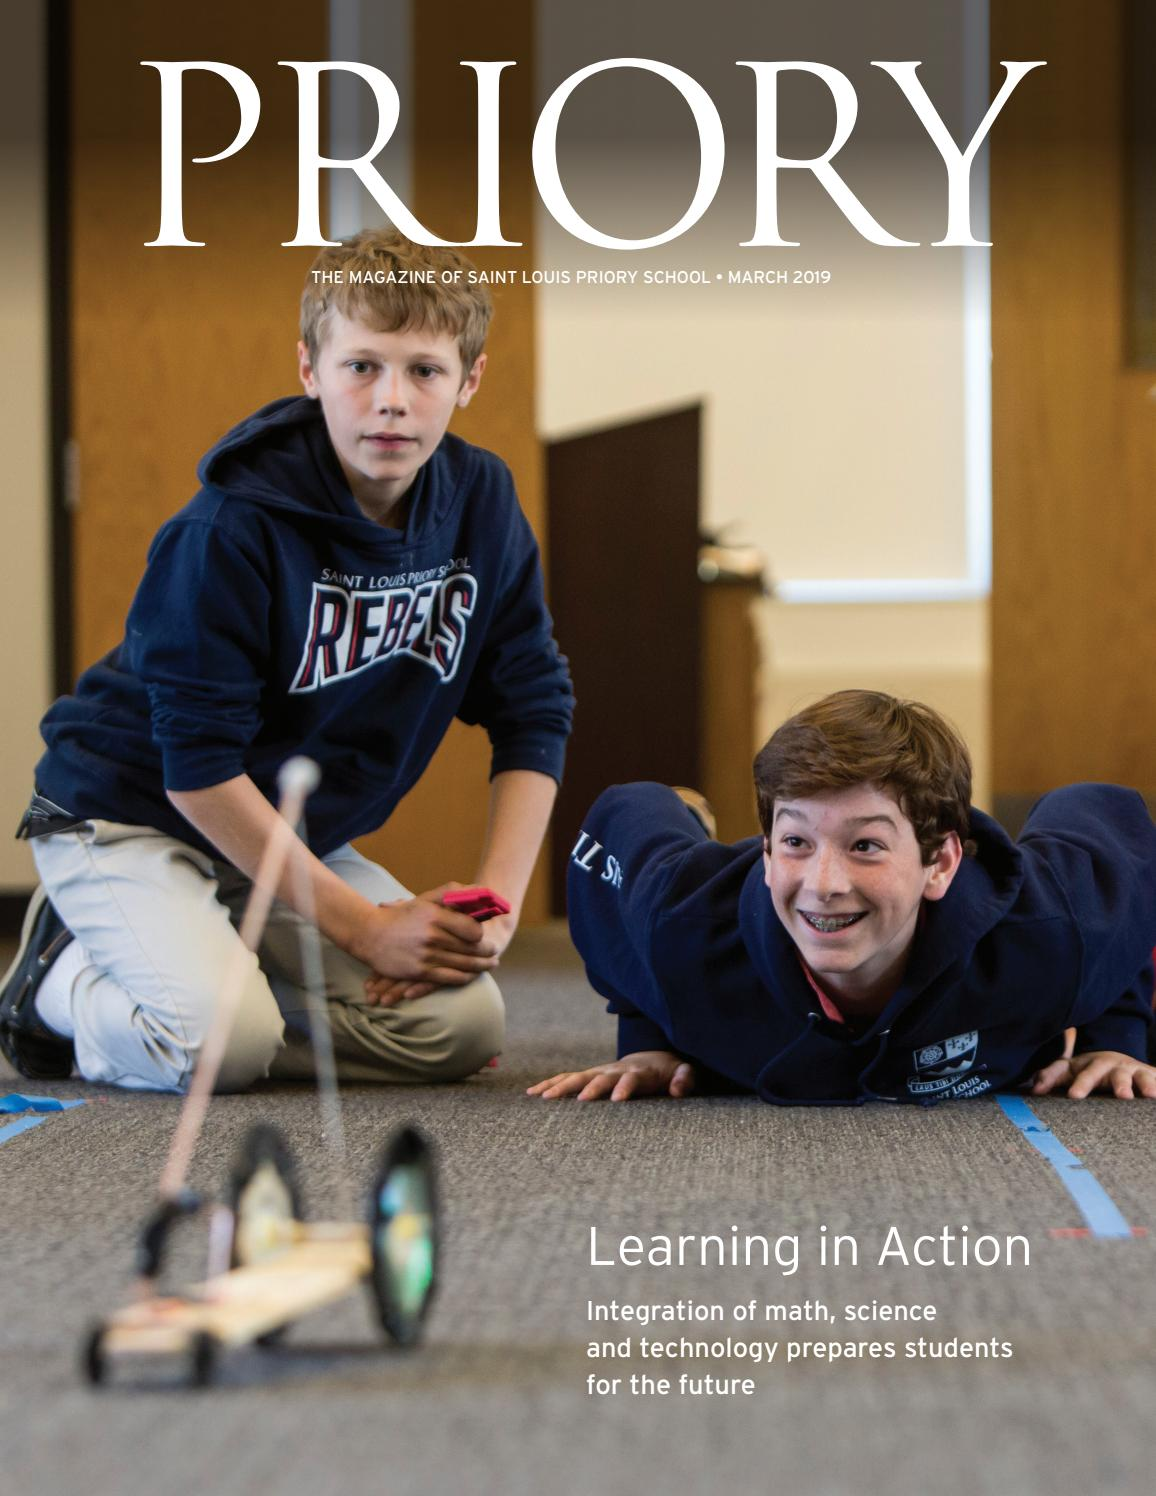 Priory Magazine, Issue 1 (March 2019) by Saint Louis Priory